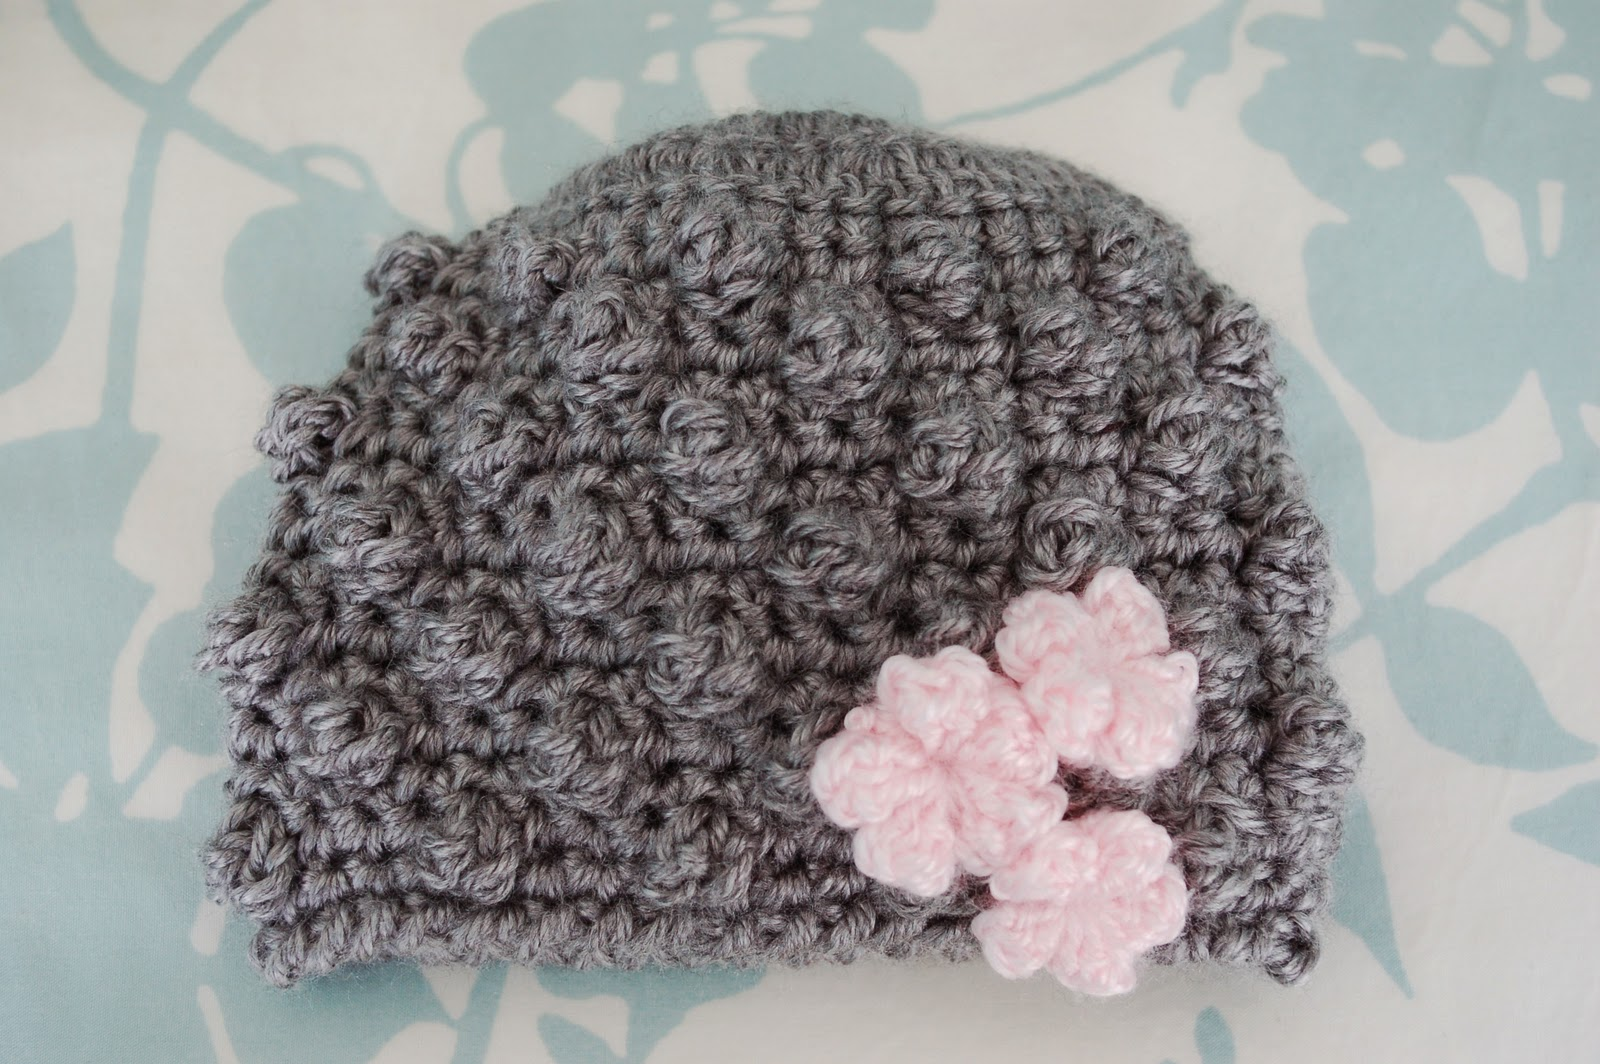 Crochet Patterns Newborn Hats : Alli Crafts: Free Pattern: Bobblicious Baby Hat